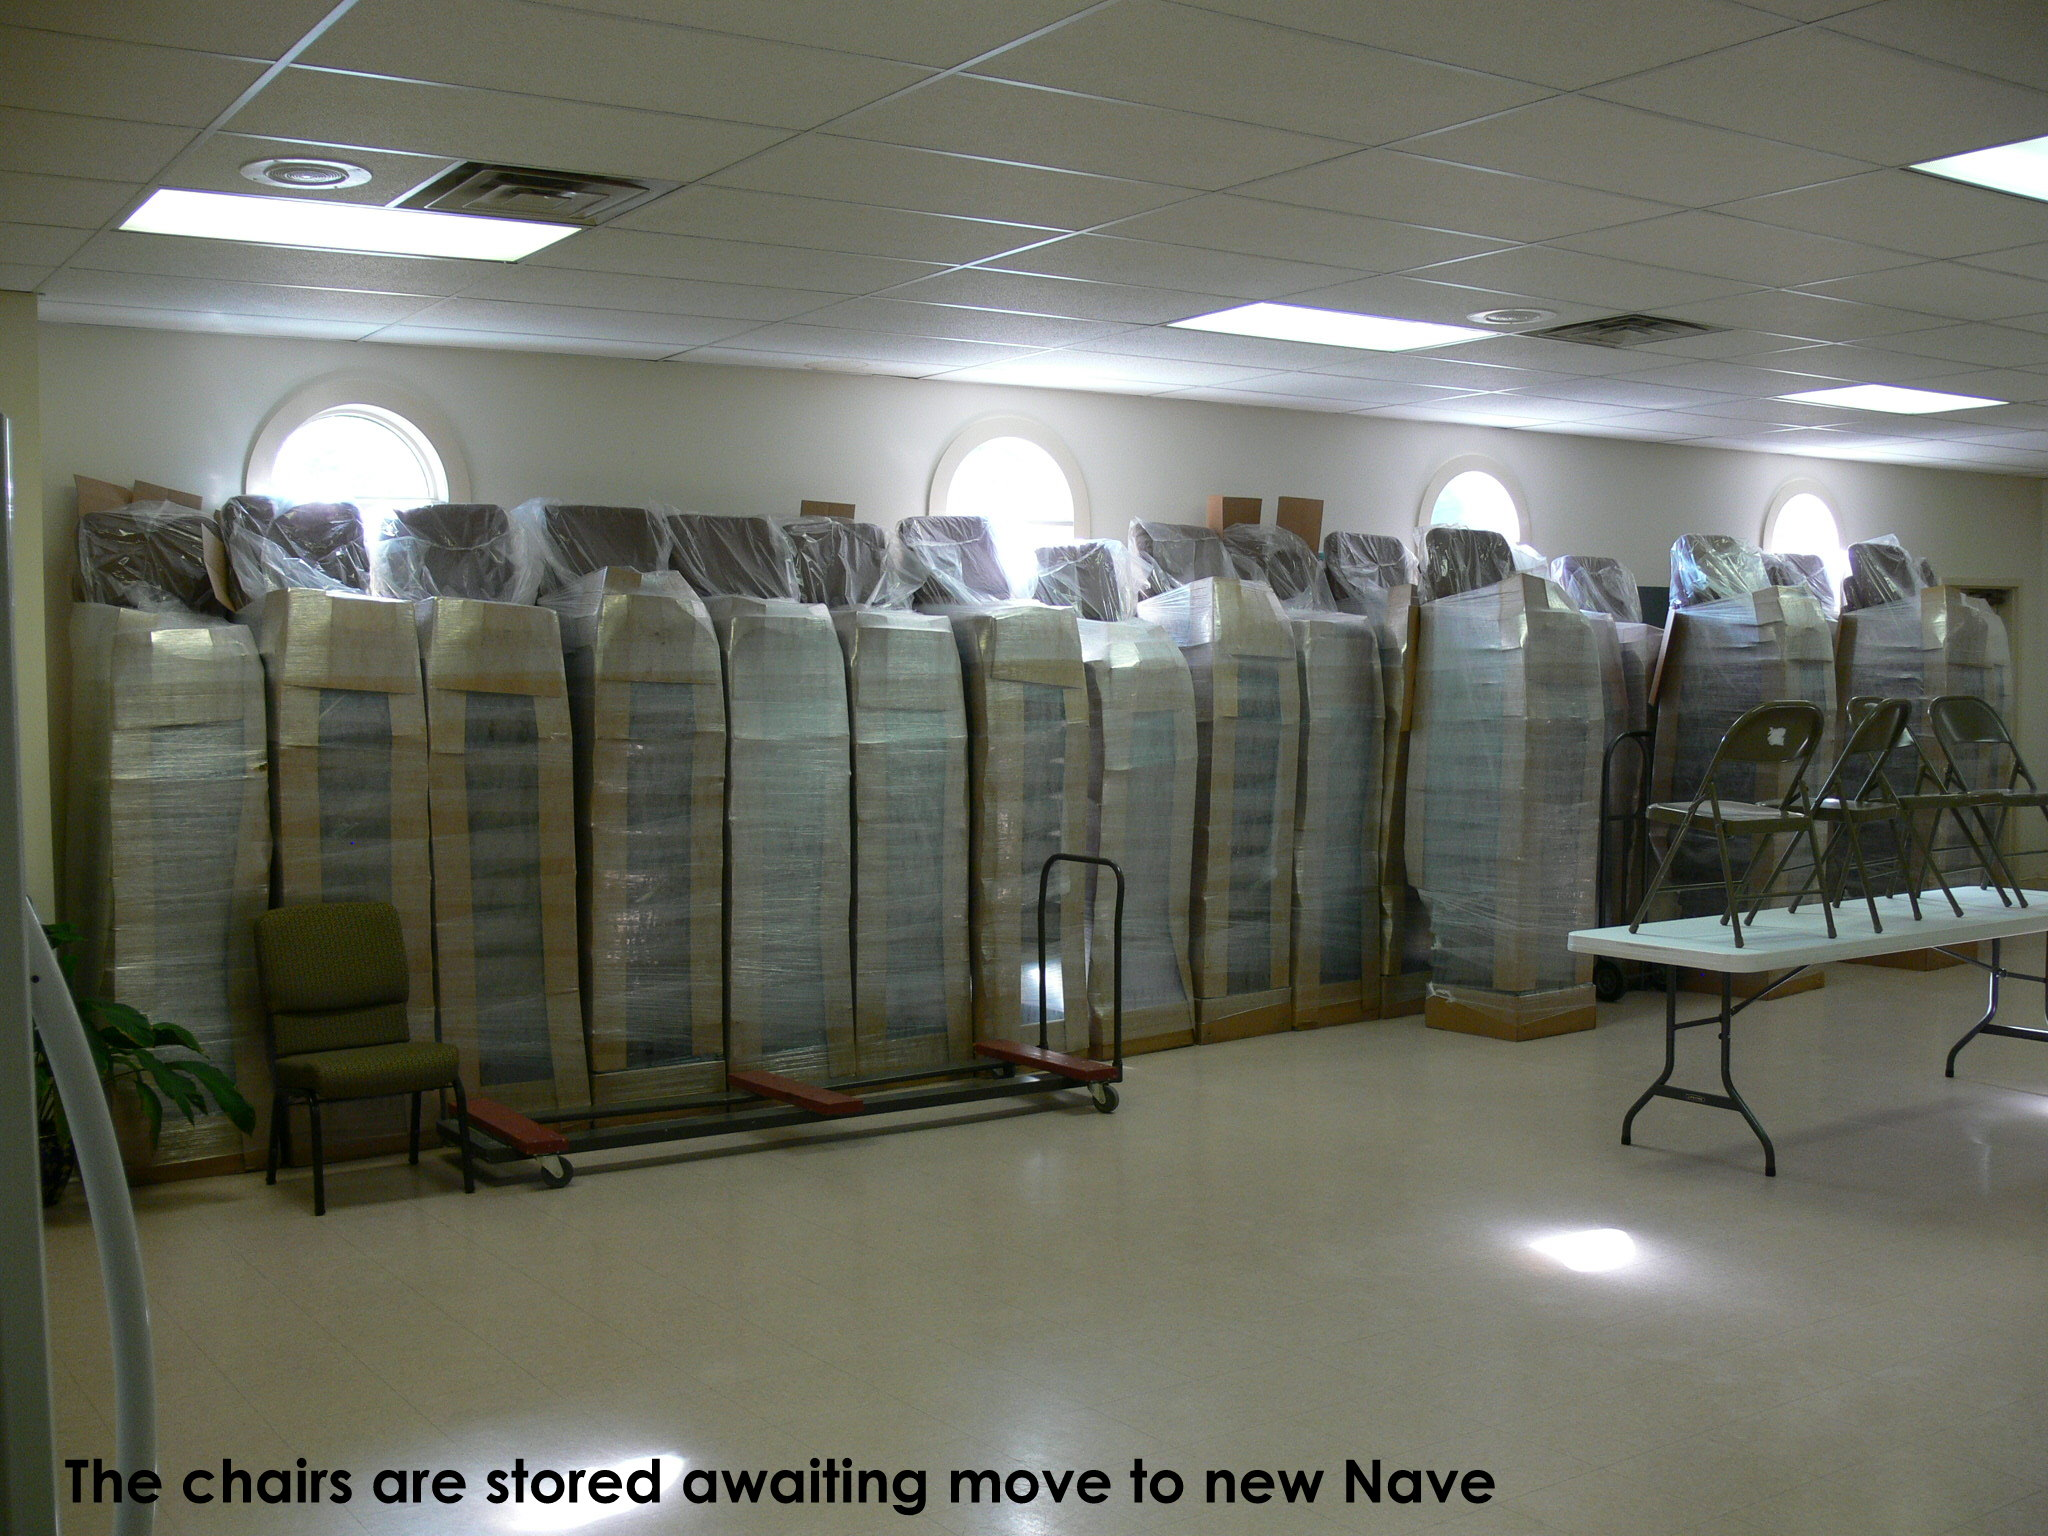 10-chairs-being-stored